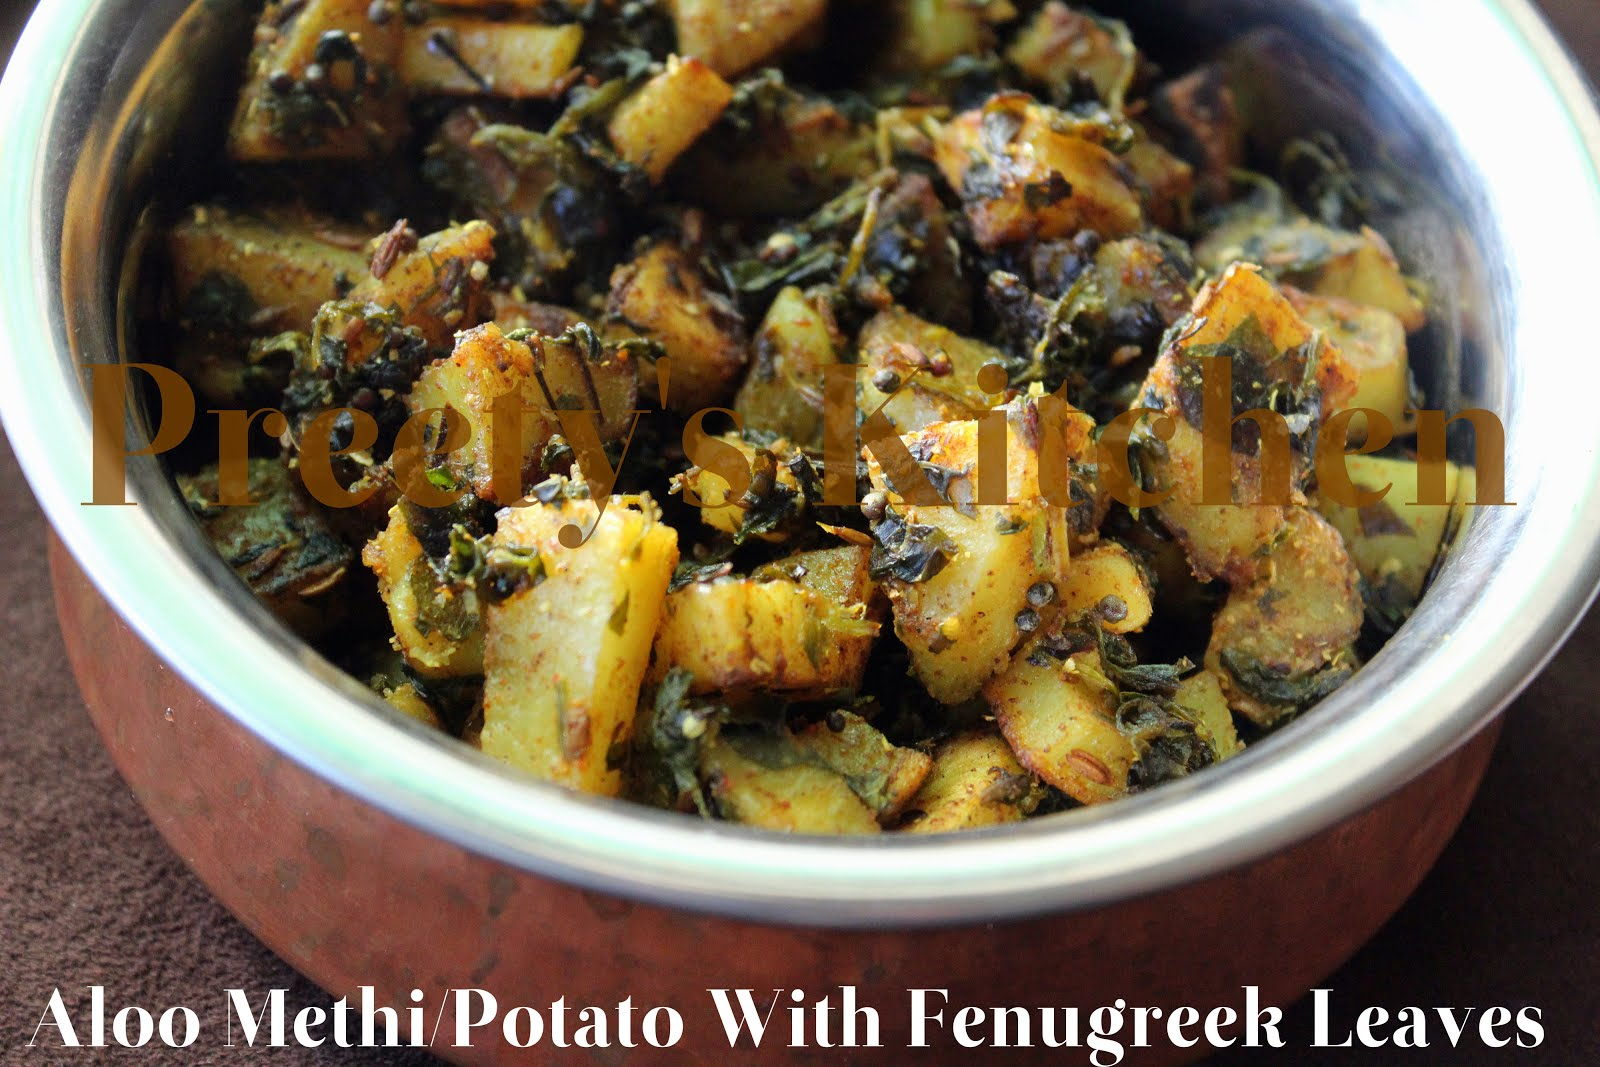 ... recipe where potato is cooked with methi leaves & aromatic spices